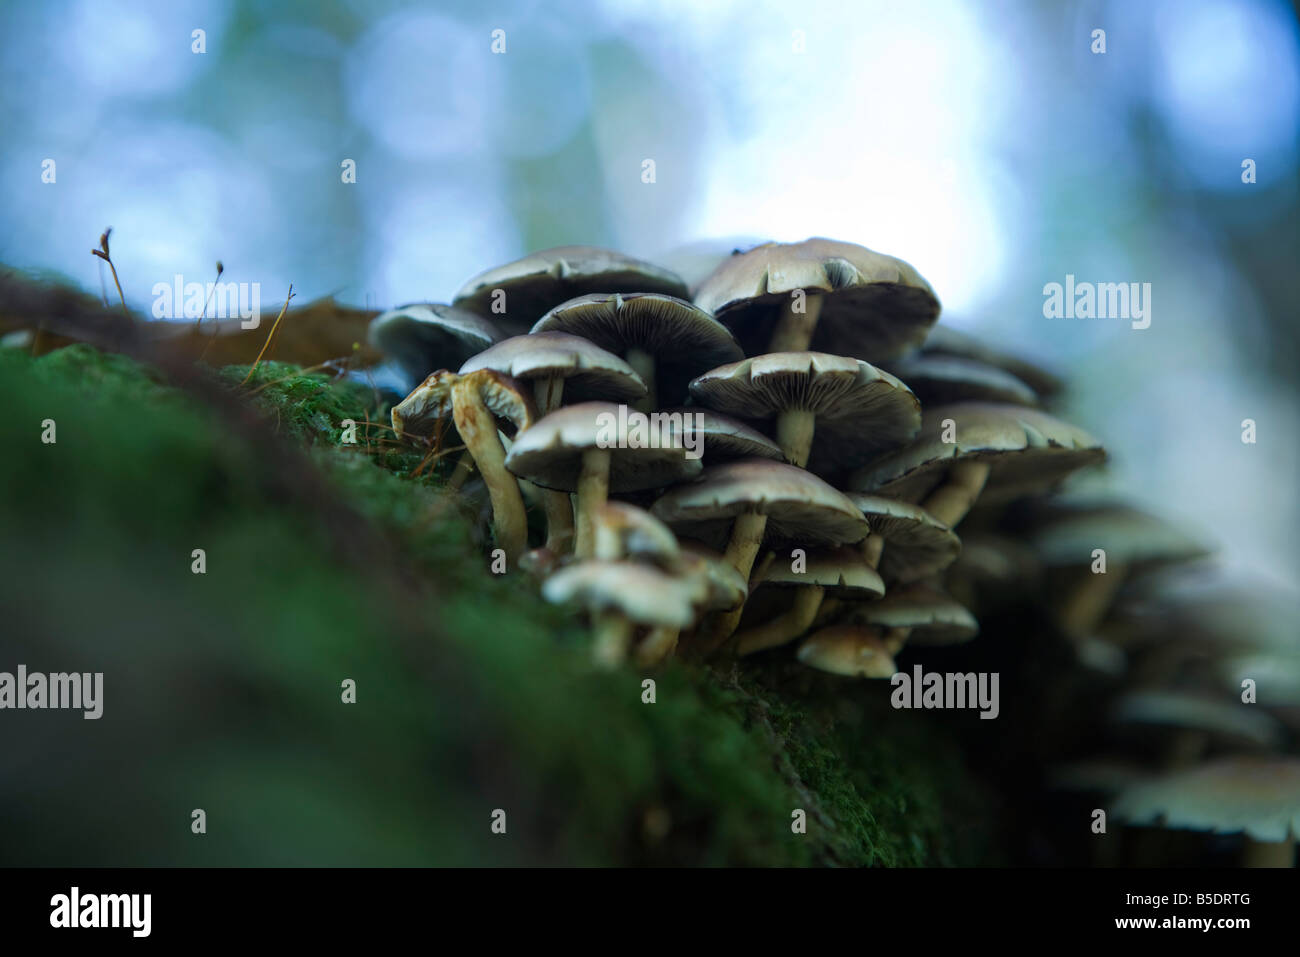 Mushrooms on the ground, low angle view - Stock Image